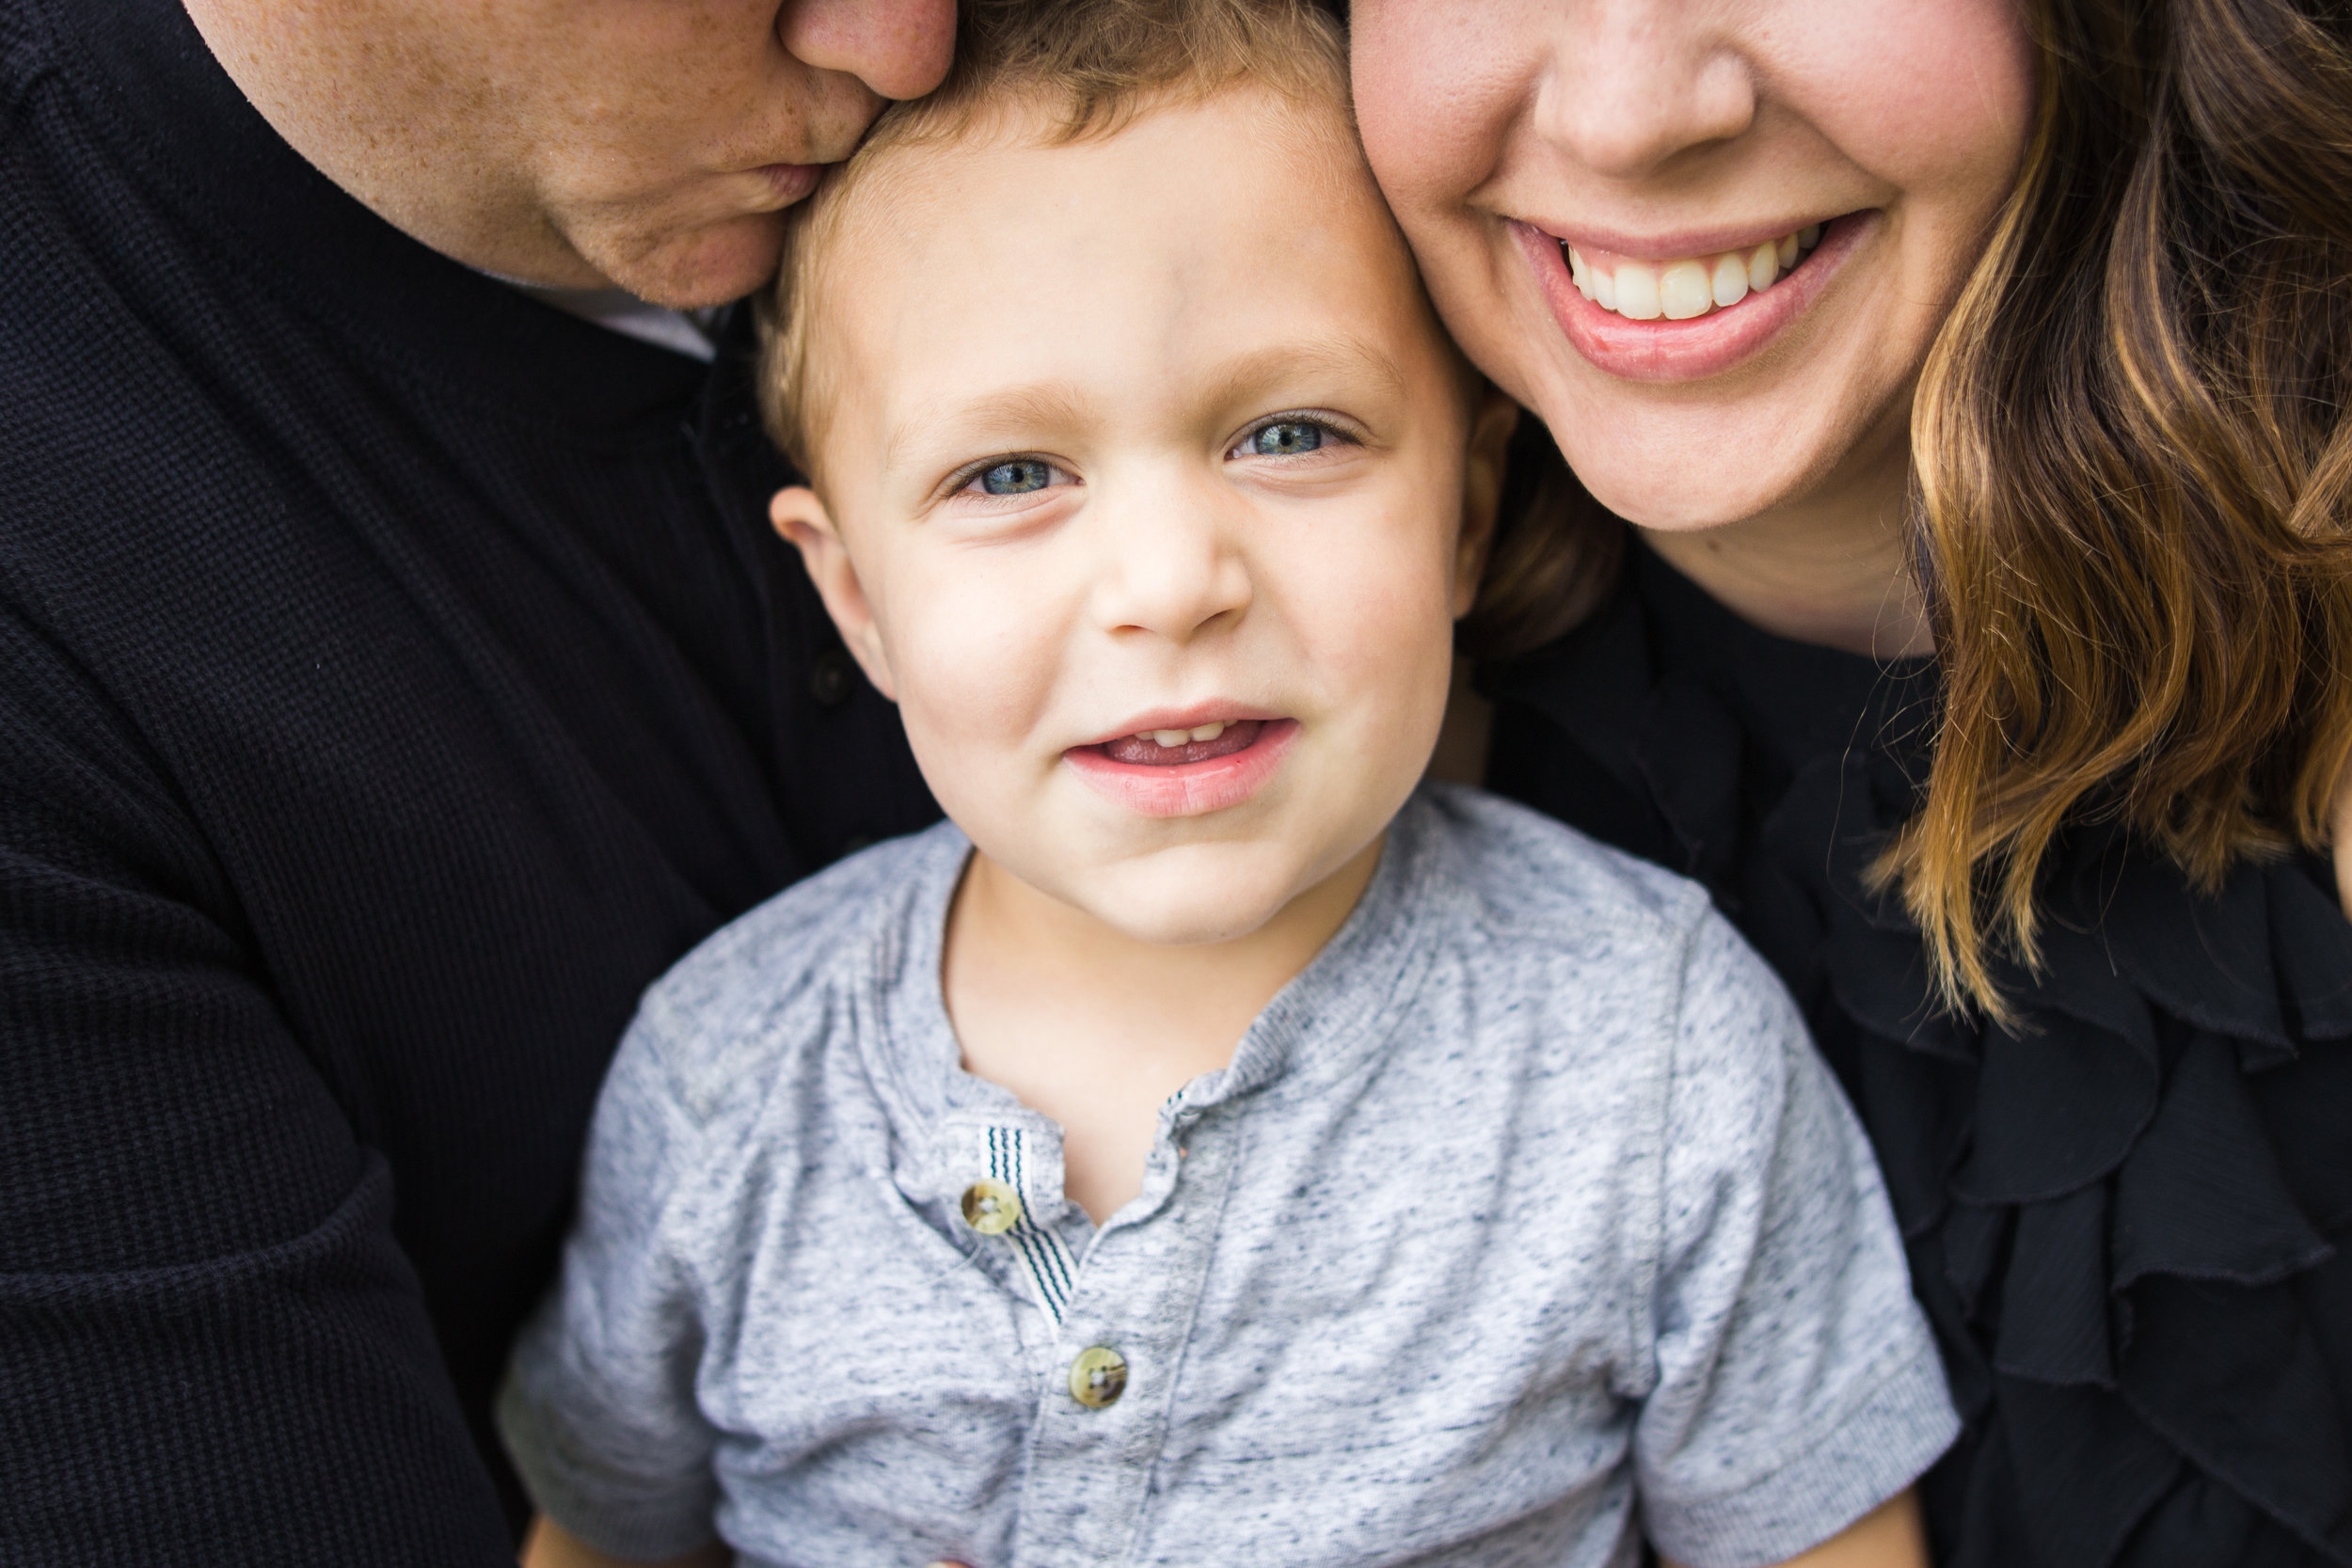 Close up shot of immediate family during photos